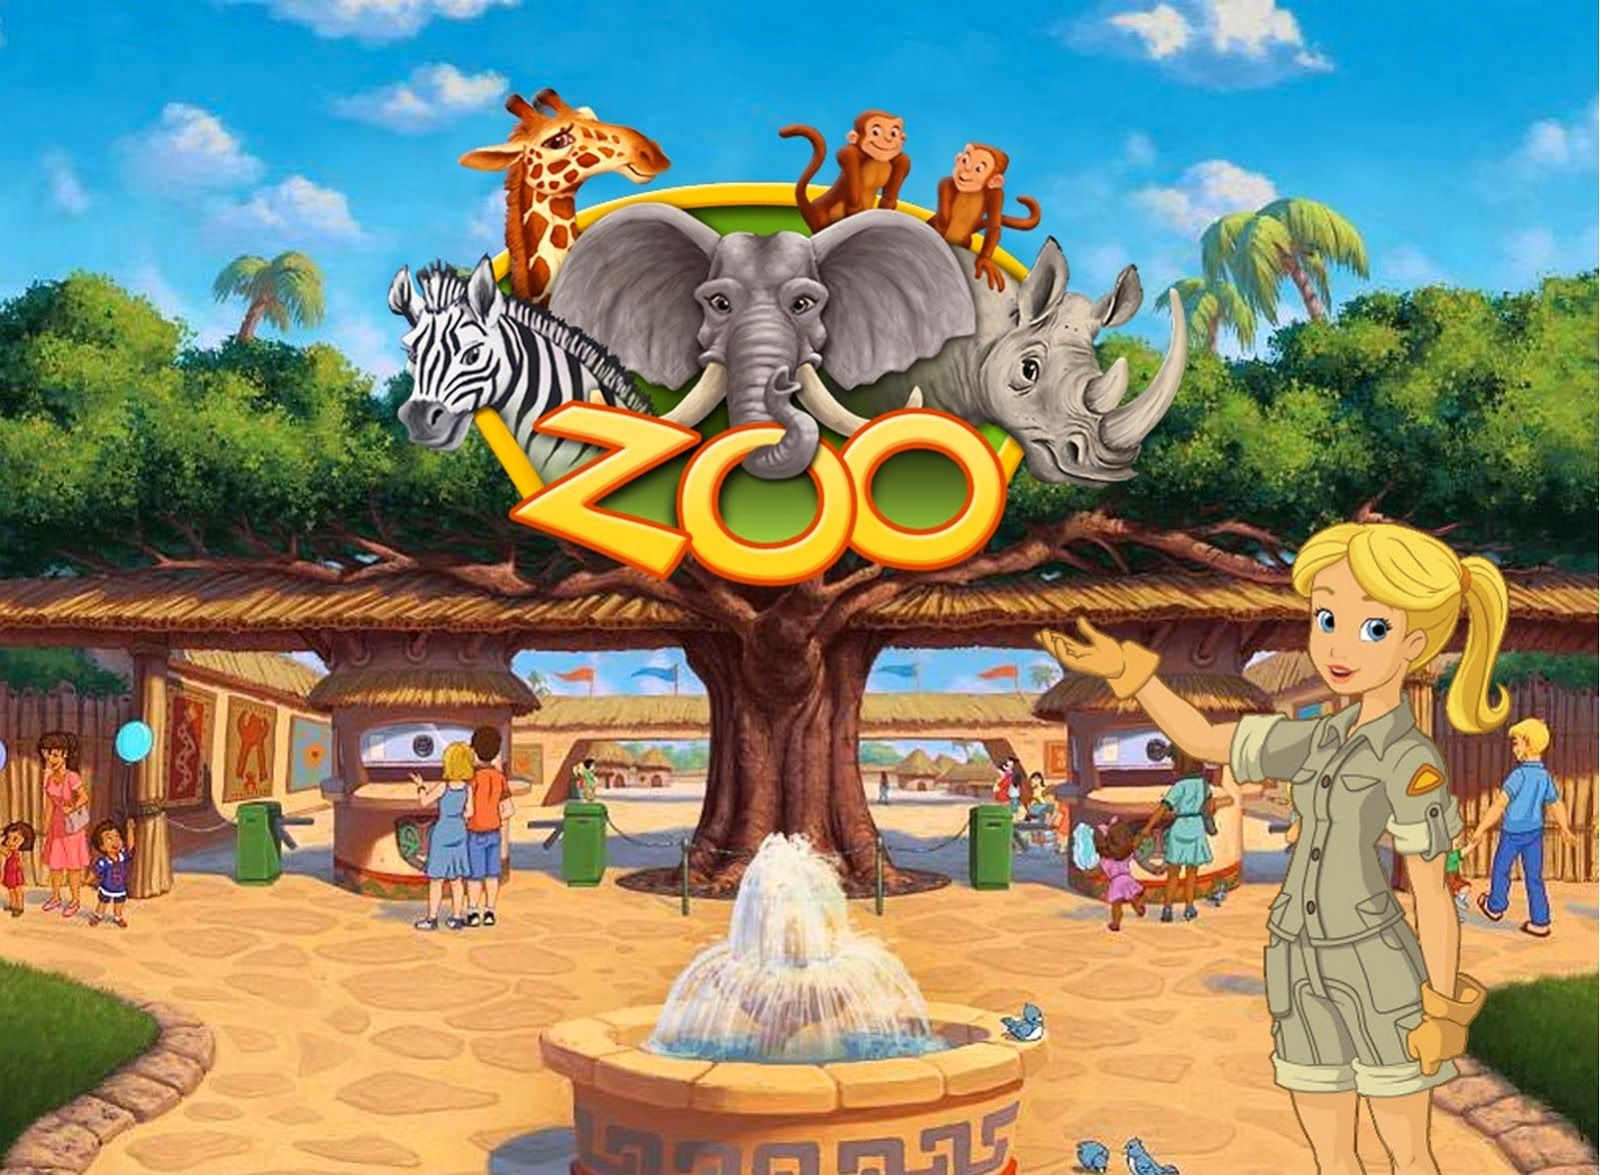 A visit to a zoo essay in english for middle level my teacher a visit to a zoo essay in english for middle level fandeluxe Choice Image